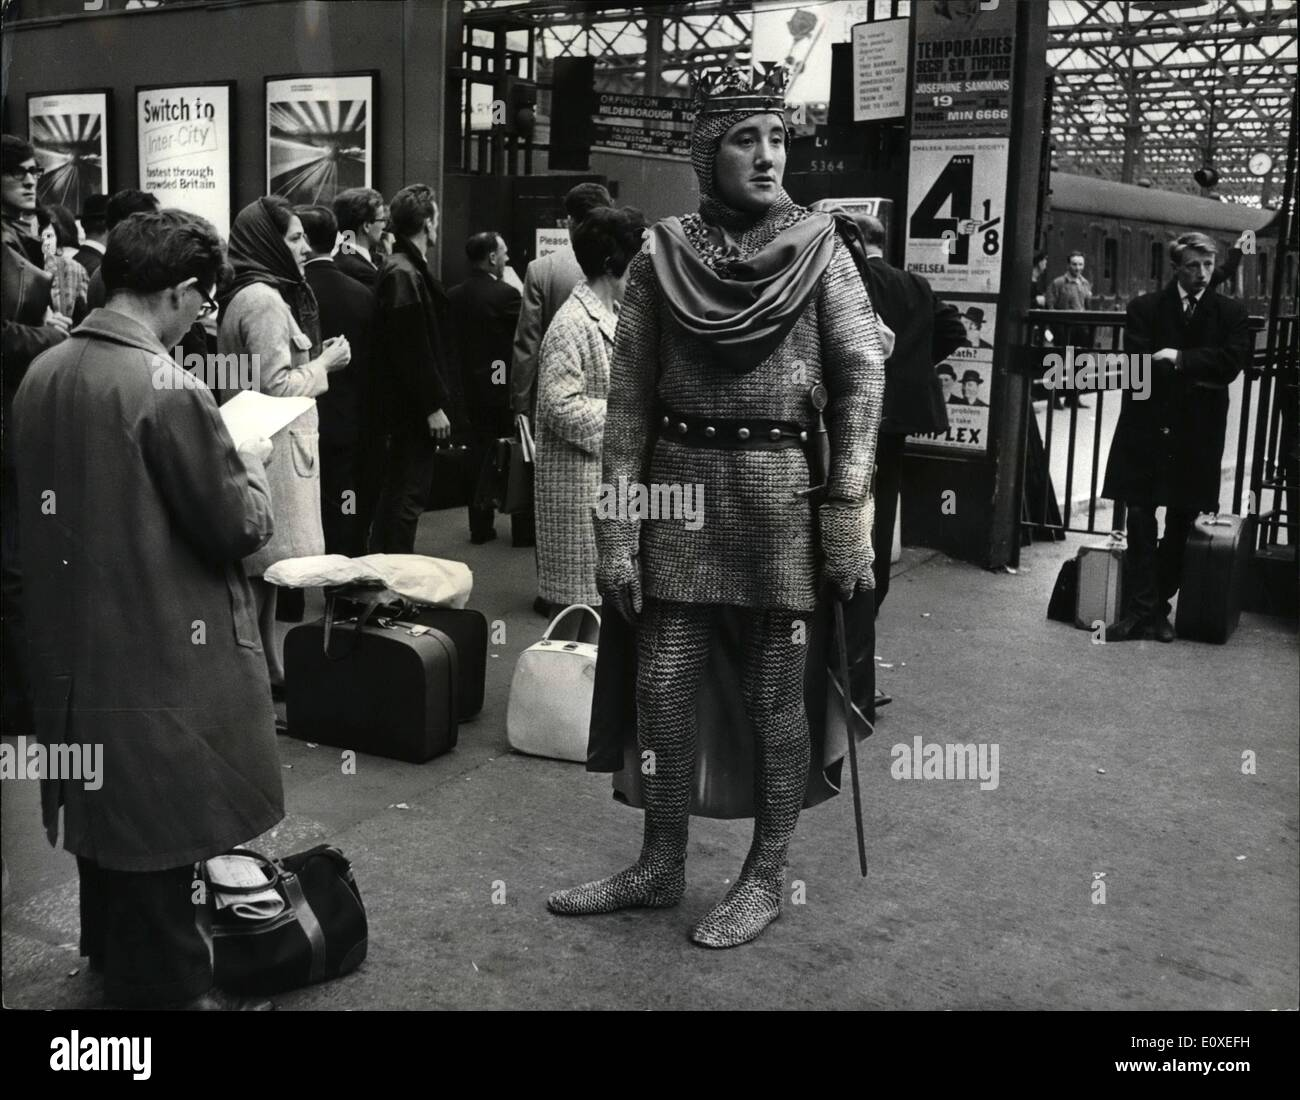 Jul. 07, 1966 - A KNIGHT ON CHARING CROSS STATION. Some 900 years ago William the Conqueror landed at Hastings in the year 1066. This year Hastings are holding a requiem off the 1066 defeat. So 25 year old NORMAN McGOWAN, in full Norman gear, took the easy way to get to Hastings by train from Charing Cross and not like William the Conquerer who arrived by beat. PHOTO SHOWS: NORMAN McGOWAN, seen waiting for the Hastings train at Charing X station last night. - Stock Image